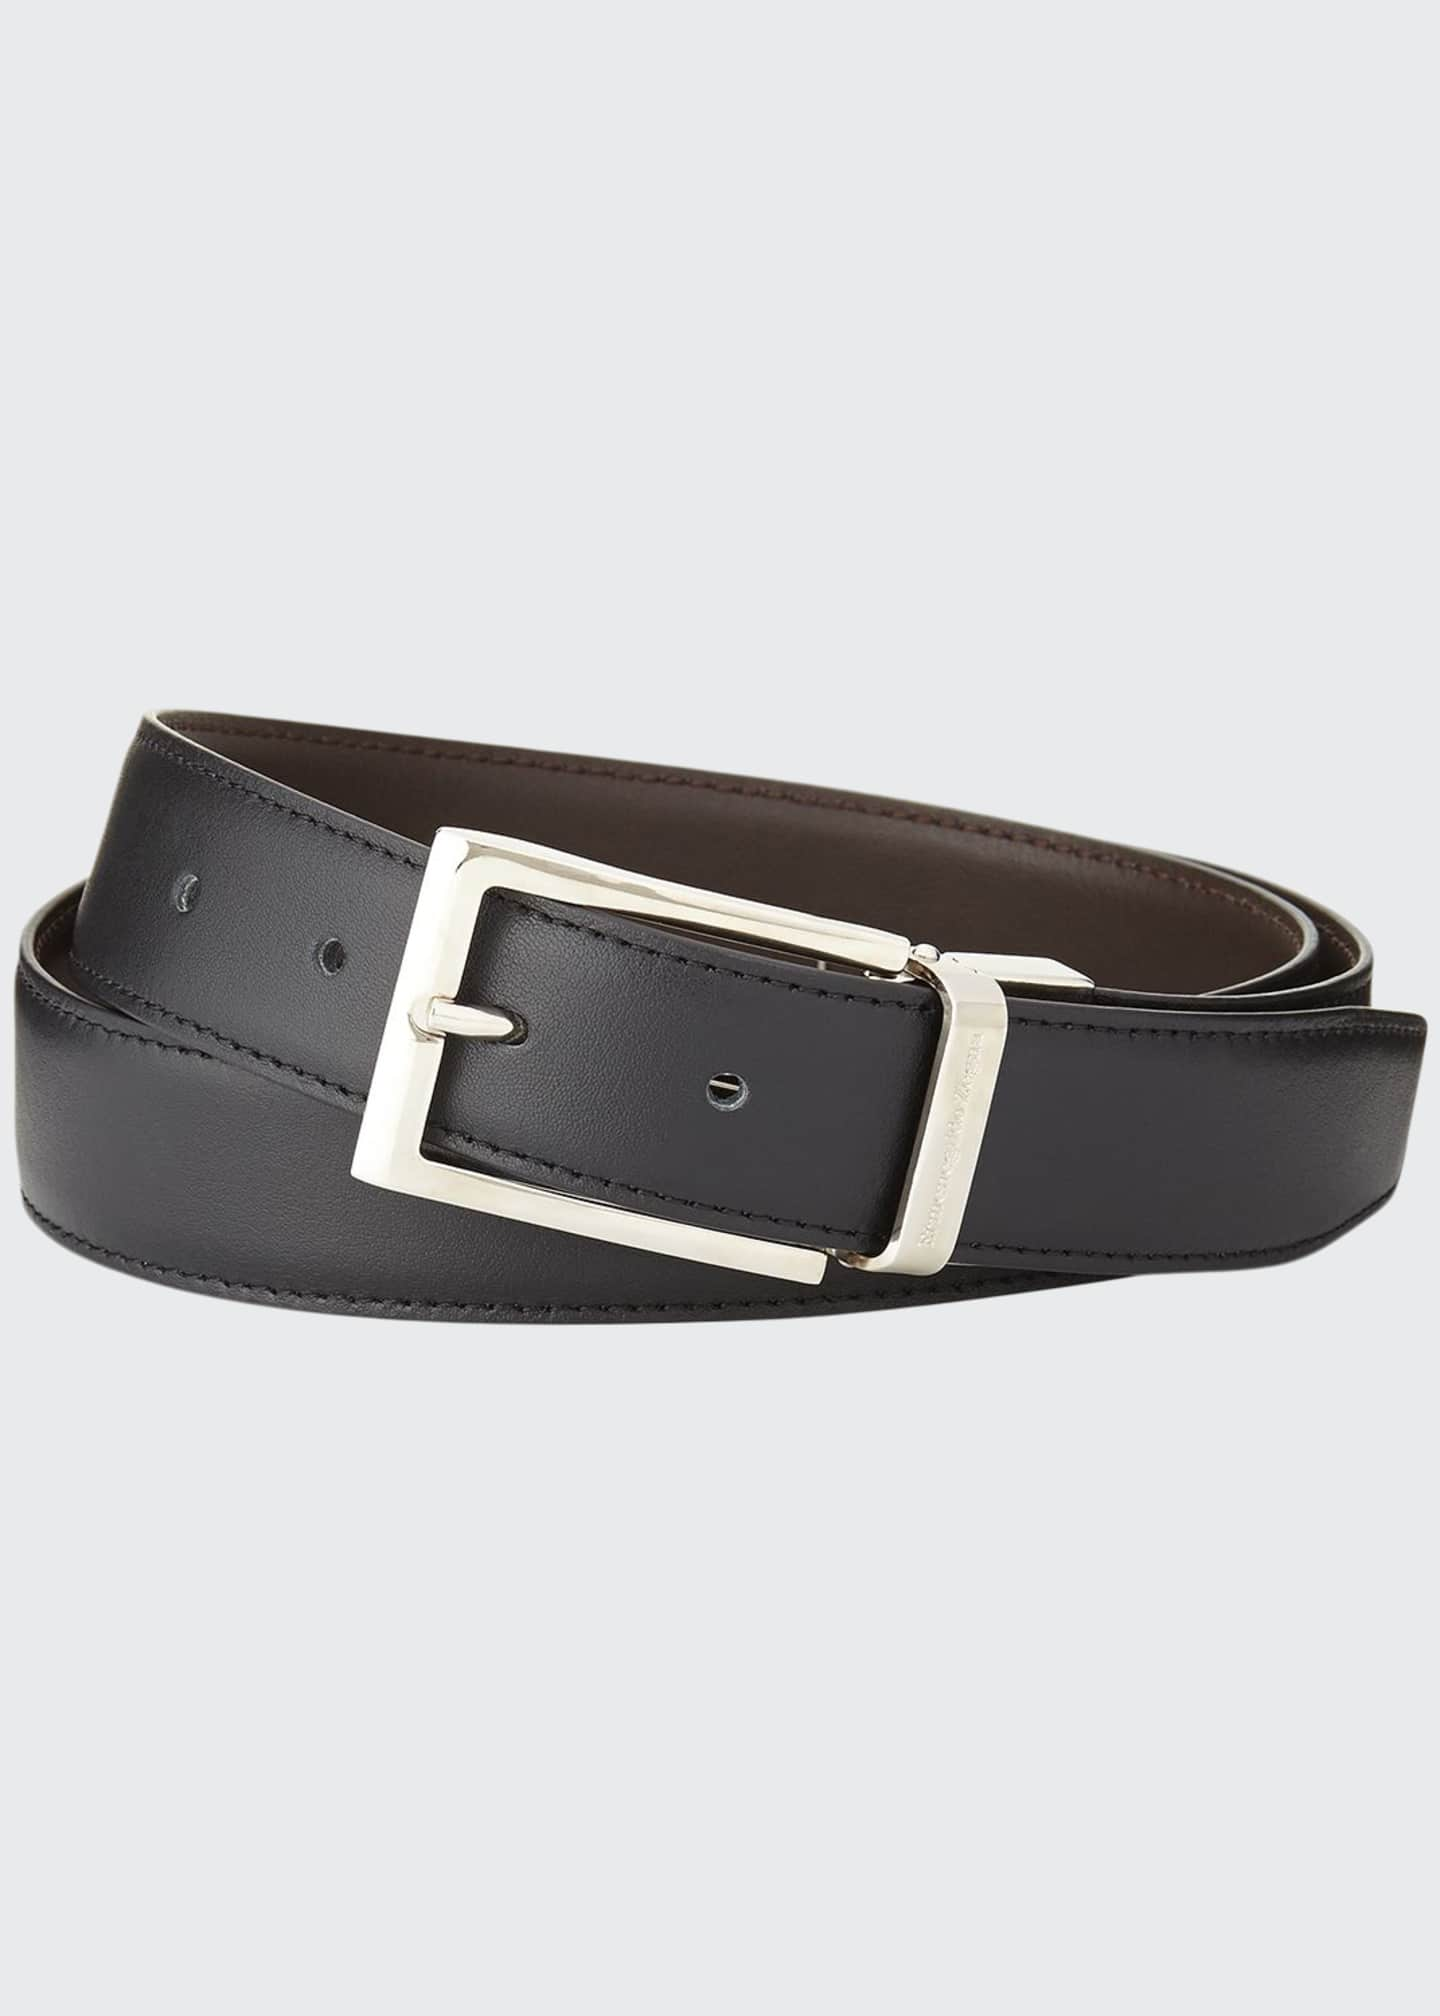 Ermenegildo Zegna Reversible Belt w/Polished Buckle, Black/Dark